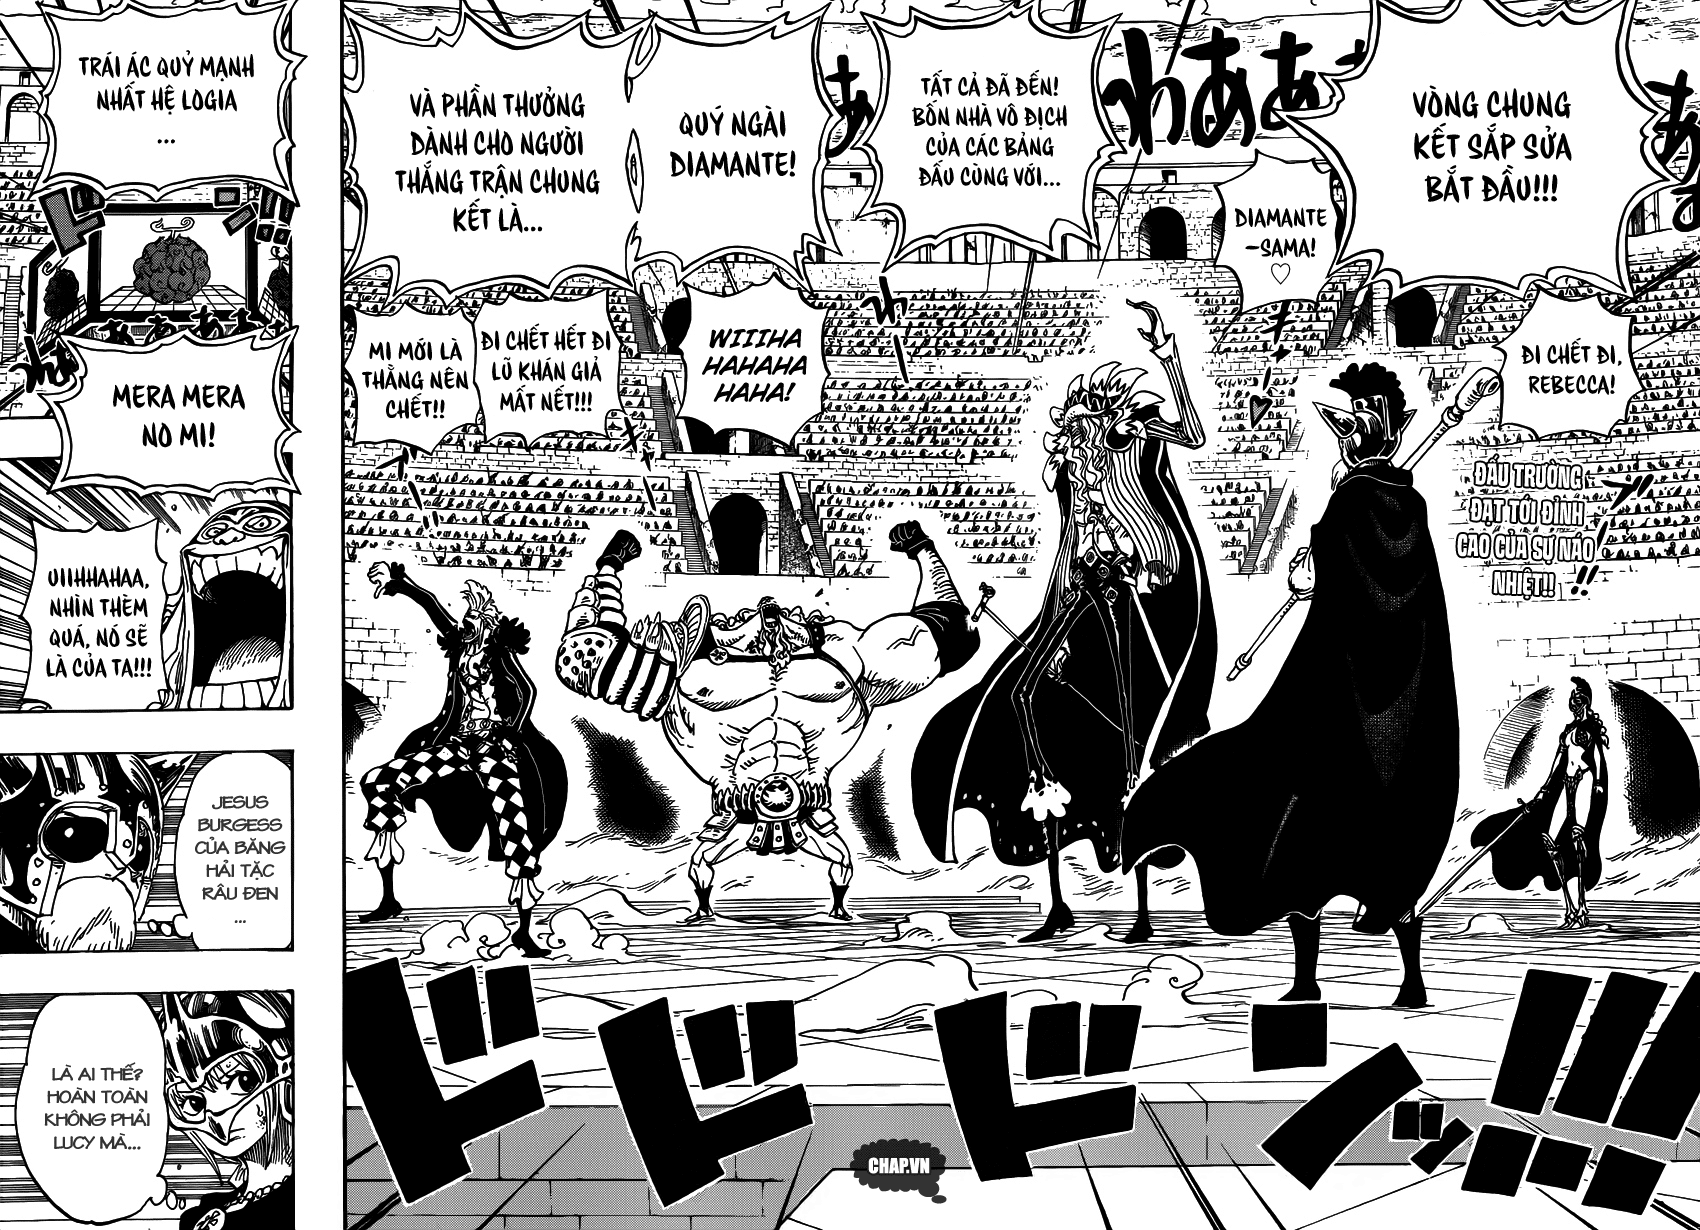 One Piece Chapter 736: Chỉ huy cấp cao: Diamante 002